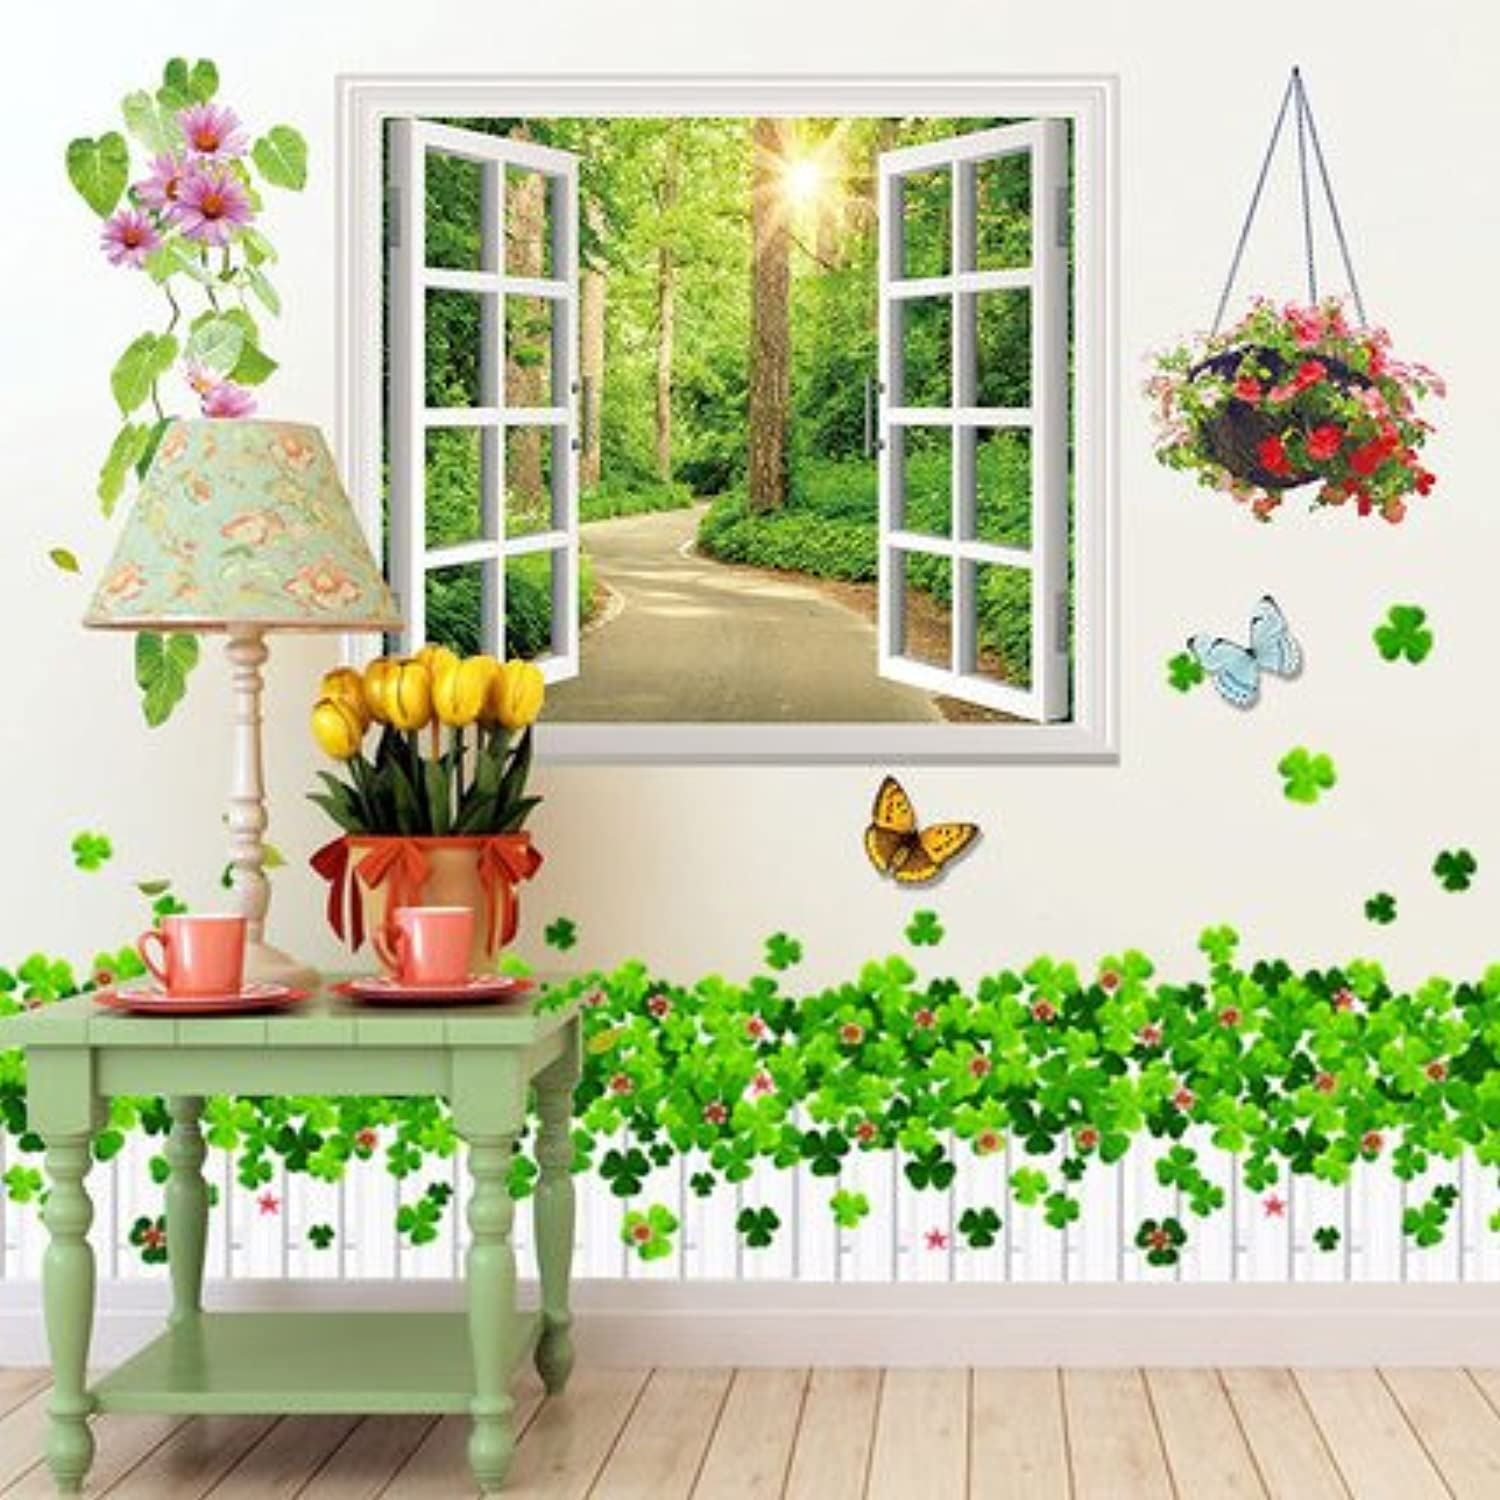 Znzbzt The Elegant and Fresh Wall Sticker Wall Art Simple and Innovative Decor self Adhesive Wall murals Window